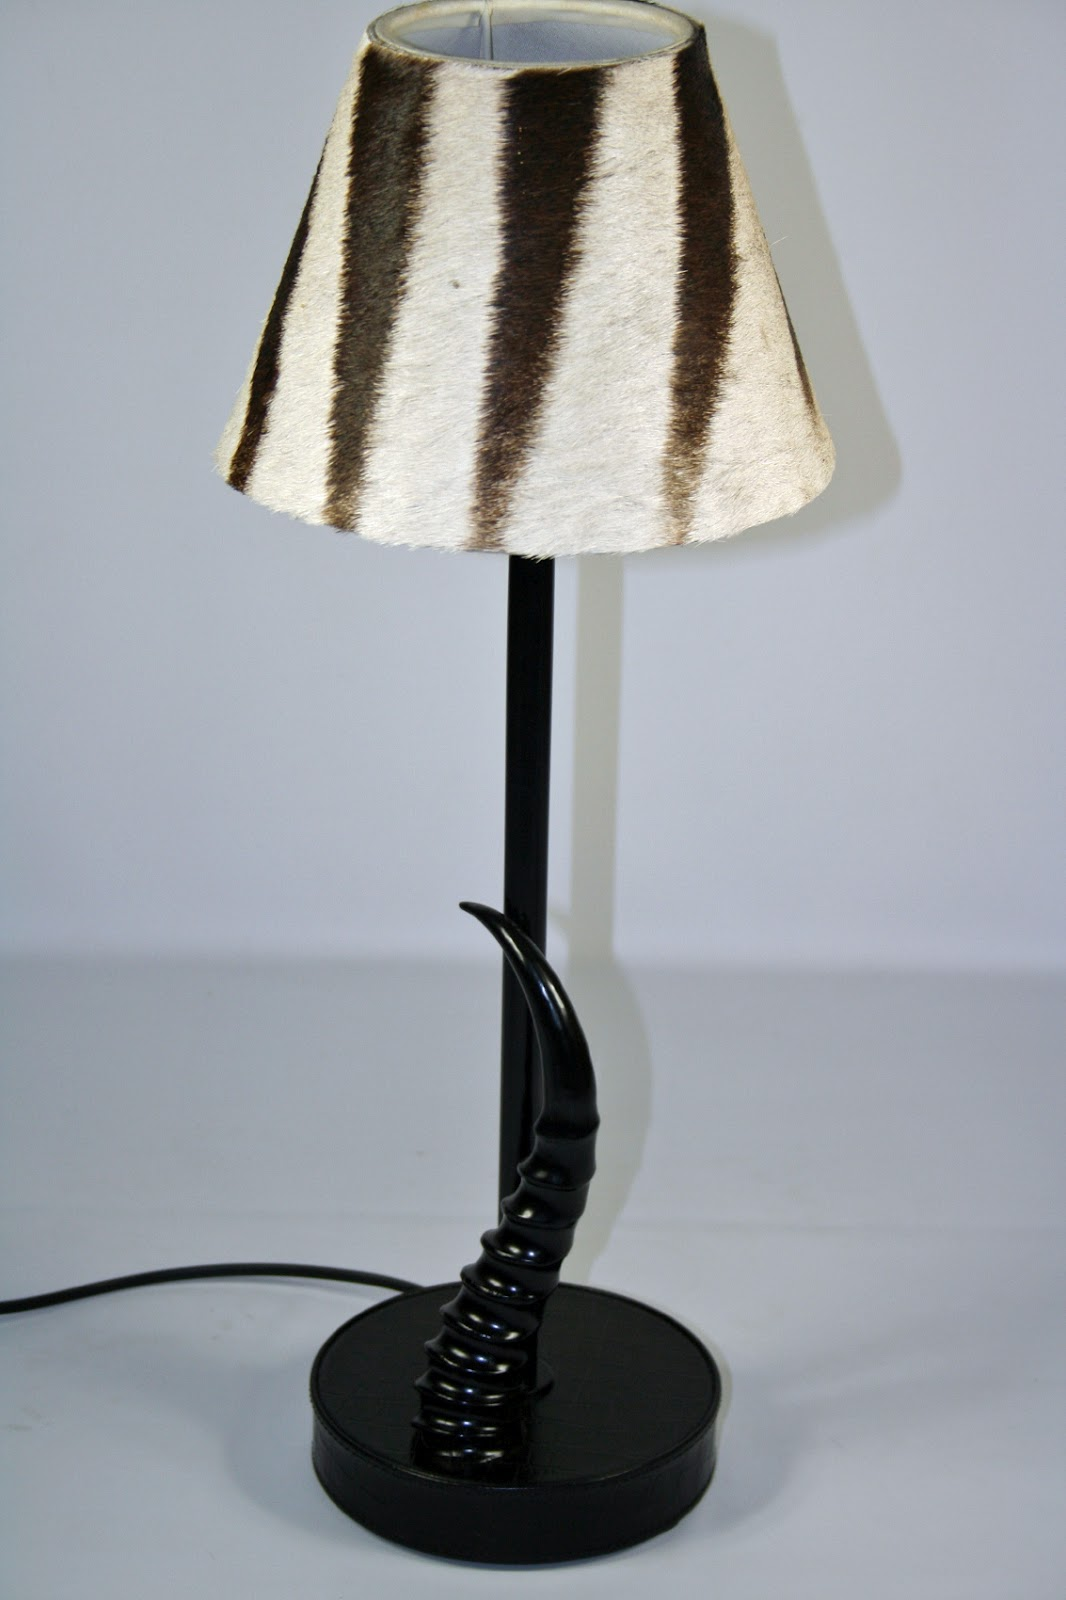 Unique floor table bedside lamps phases africa african decor small zebra lampshade and black springbok horn base phases africa aloadofball Images